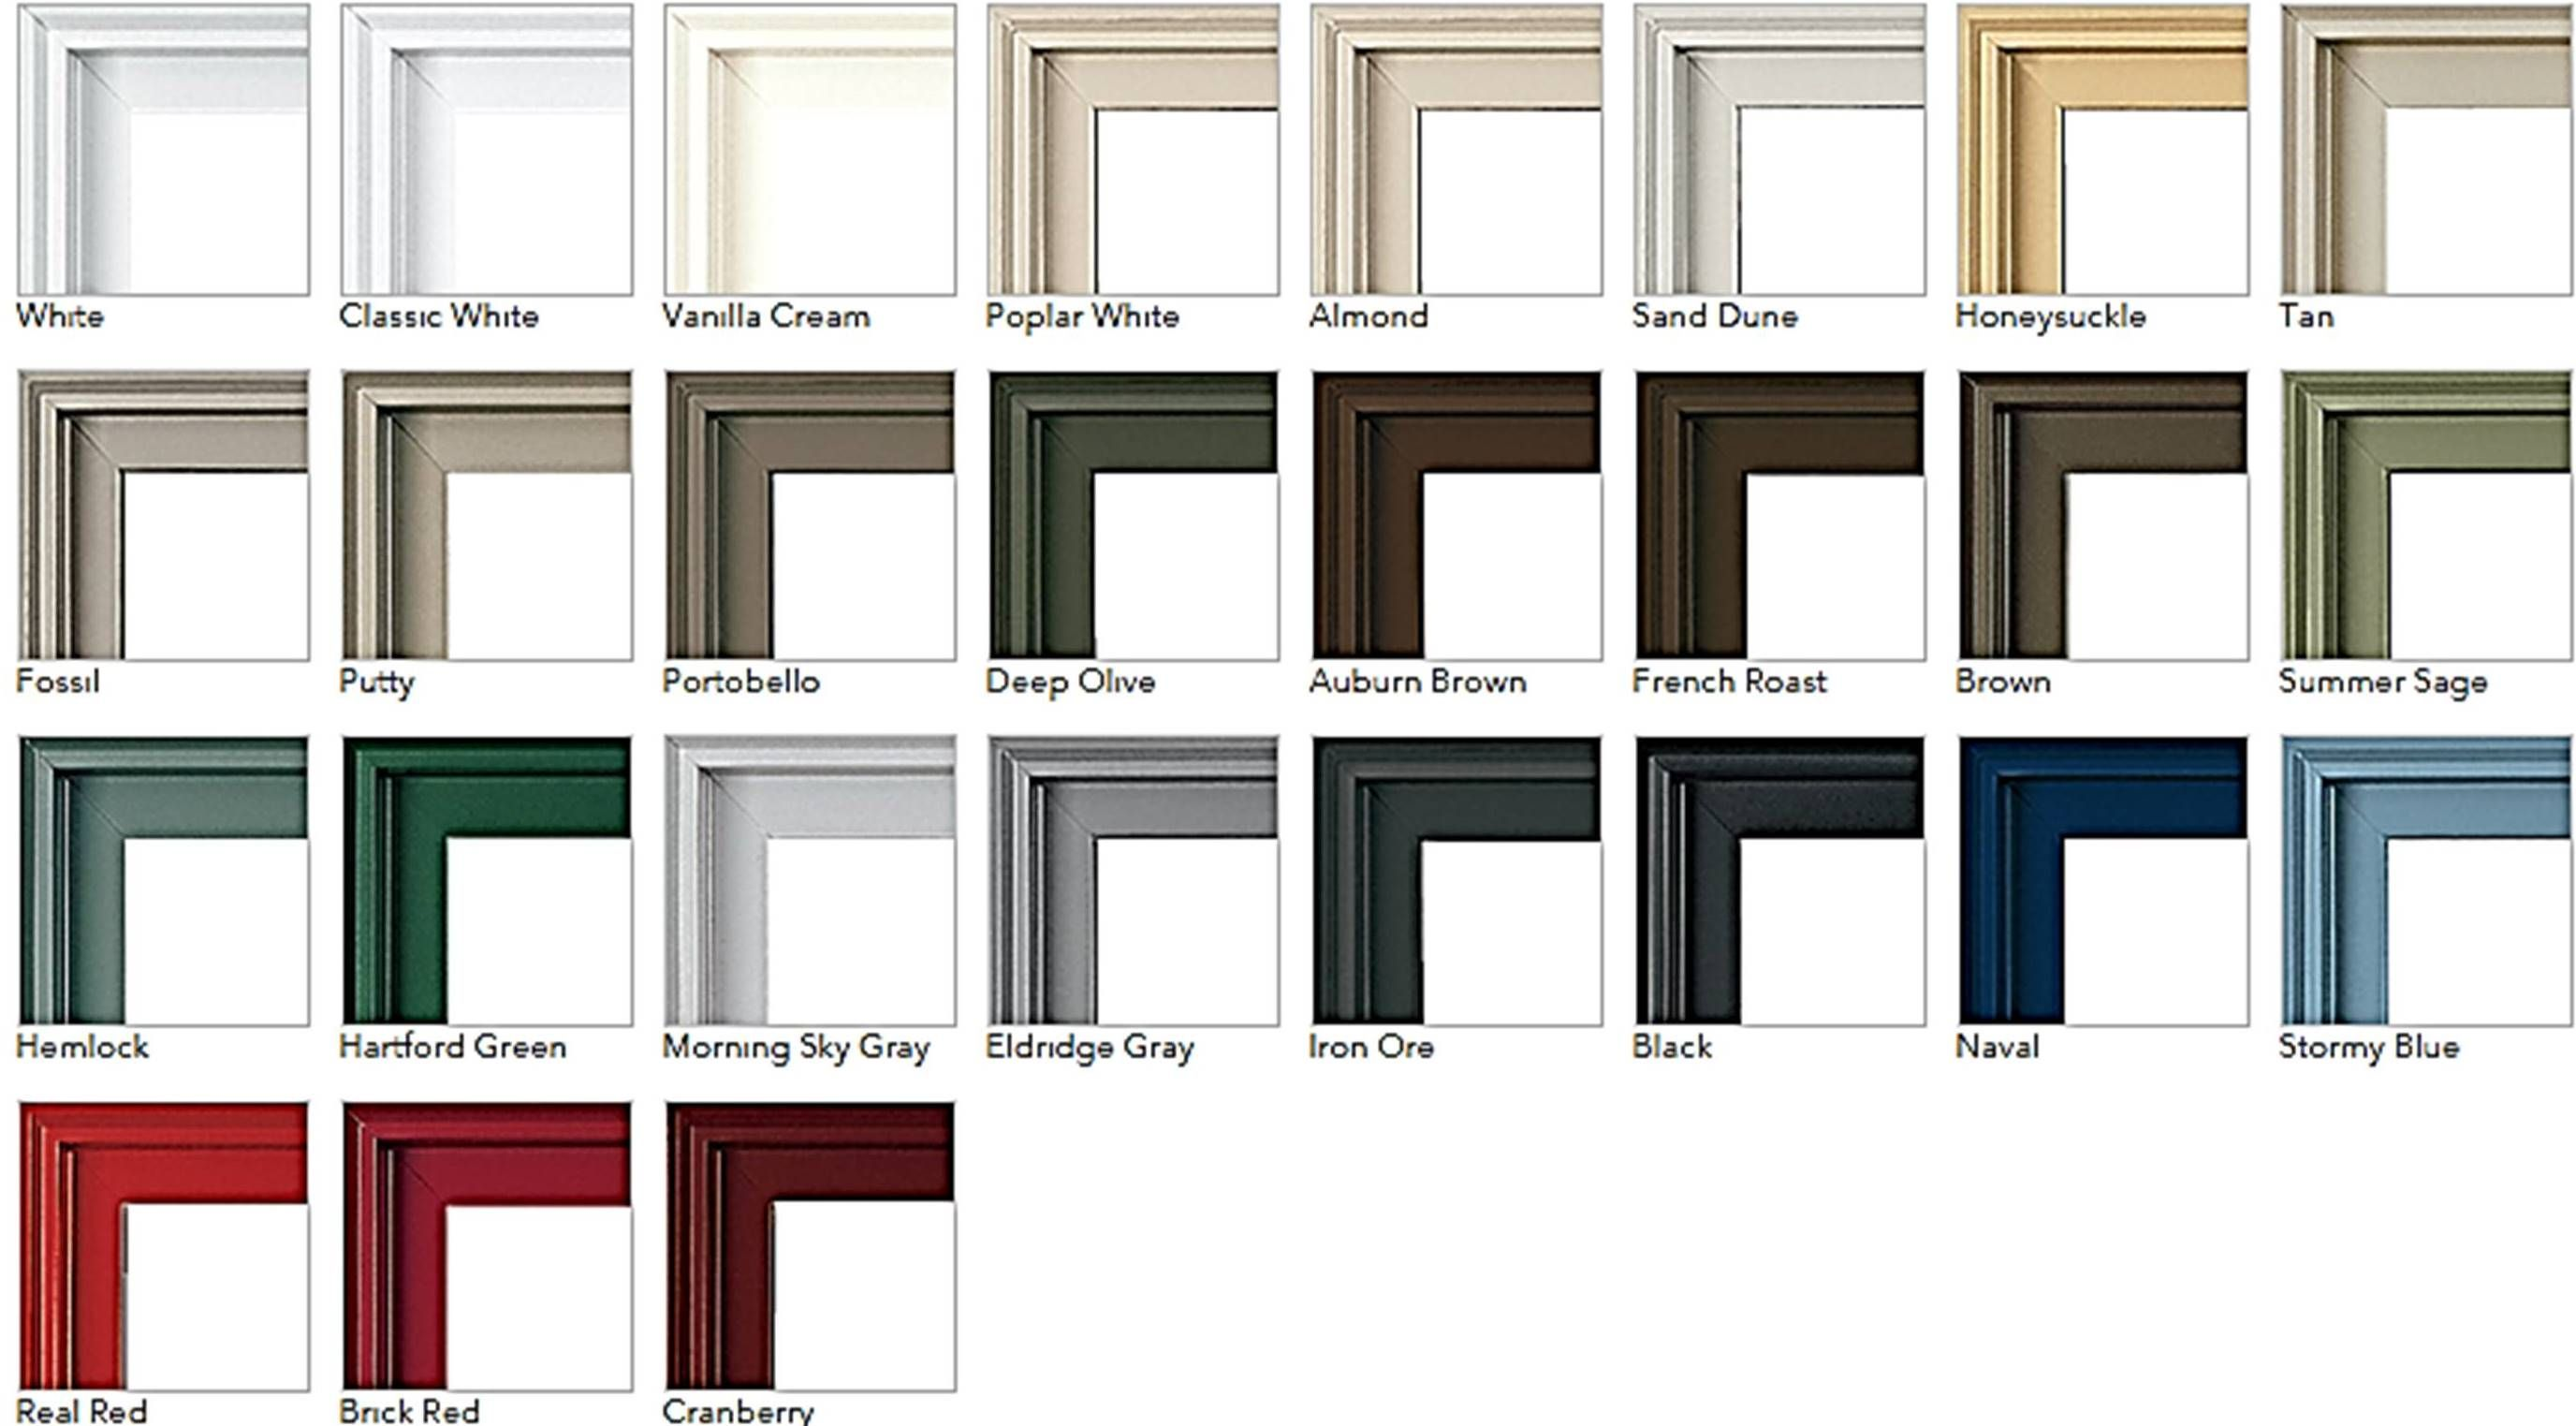 Pellas aluminum cladding is available in 27 colors on designer and pellas aluminum cladding is available in 27 colors on designer and architect series wood products geenschuldenfo Gallery